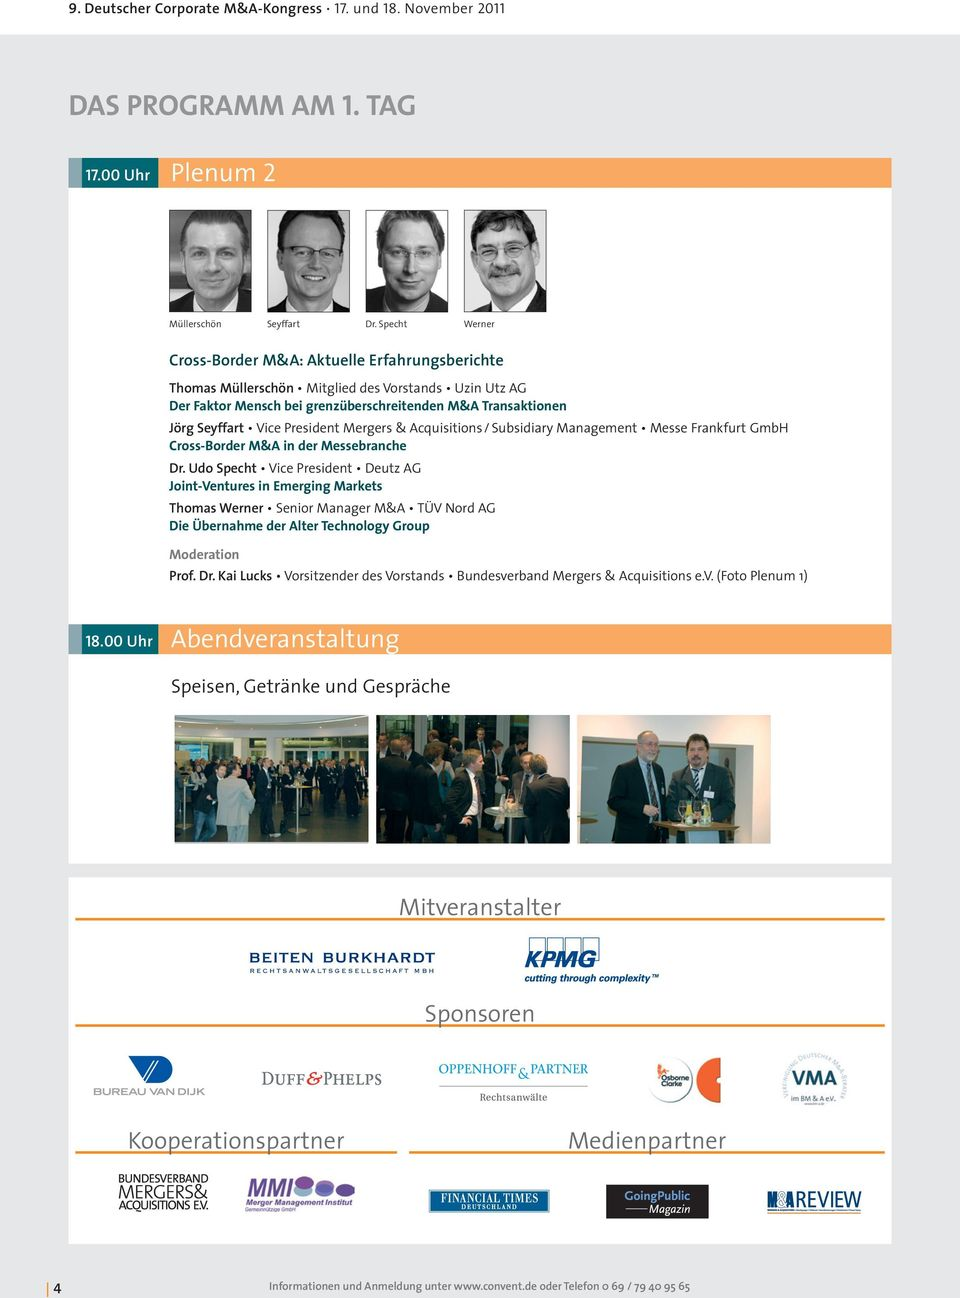 President Mergers & Acquisitions / Subsidiary Management Messe Frankfurt GmbH Cross-Border M&A in der Messebranche Dr.